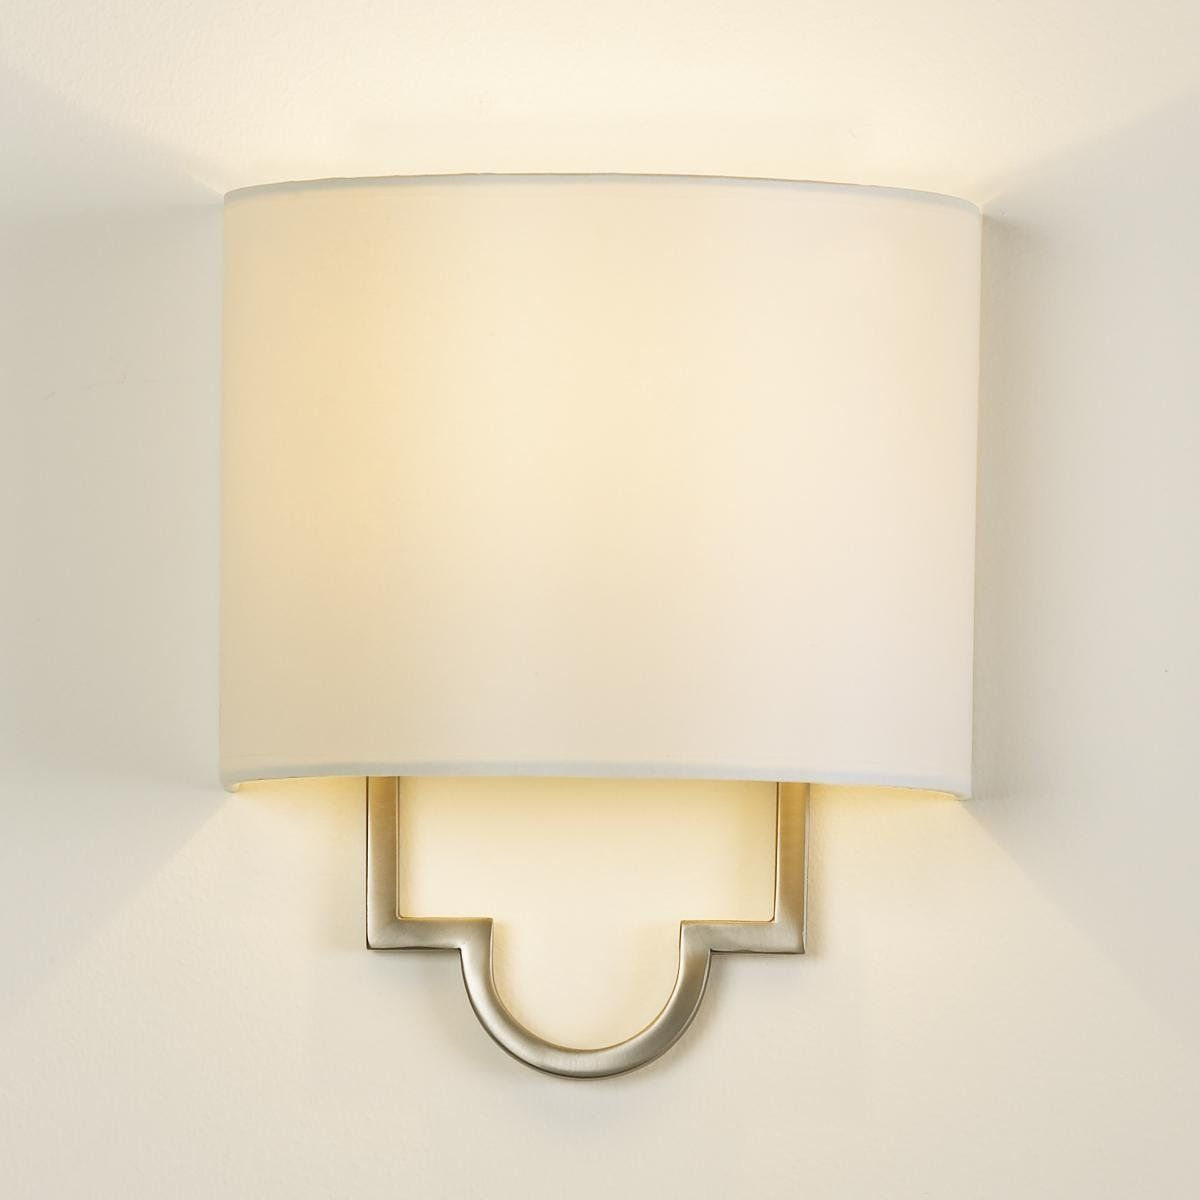 Modern Classic Wall Sconce | Modern classic, Wall sconces and Modern